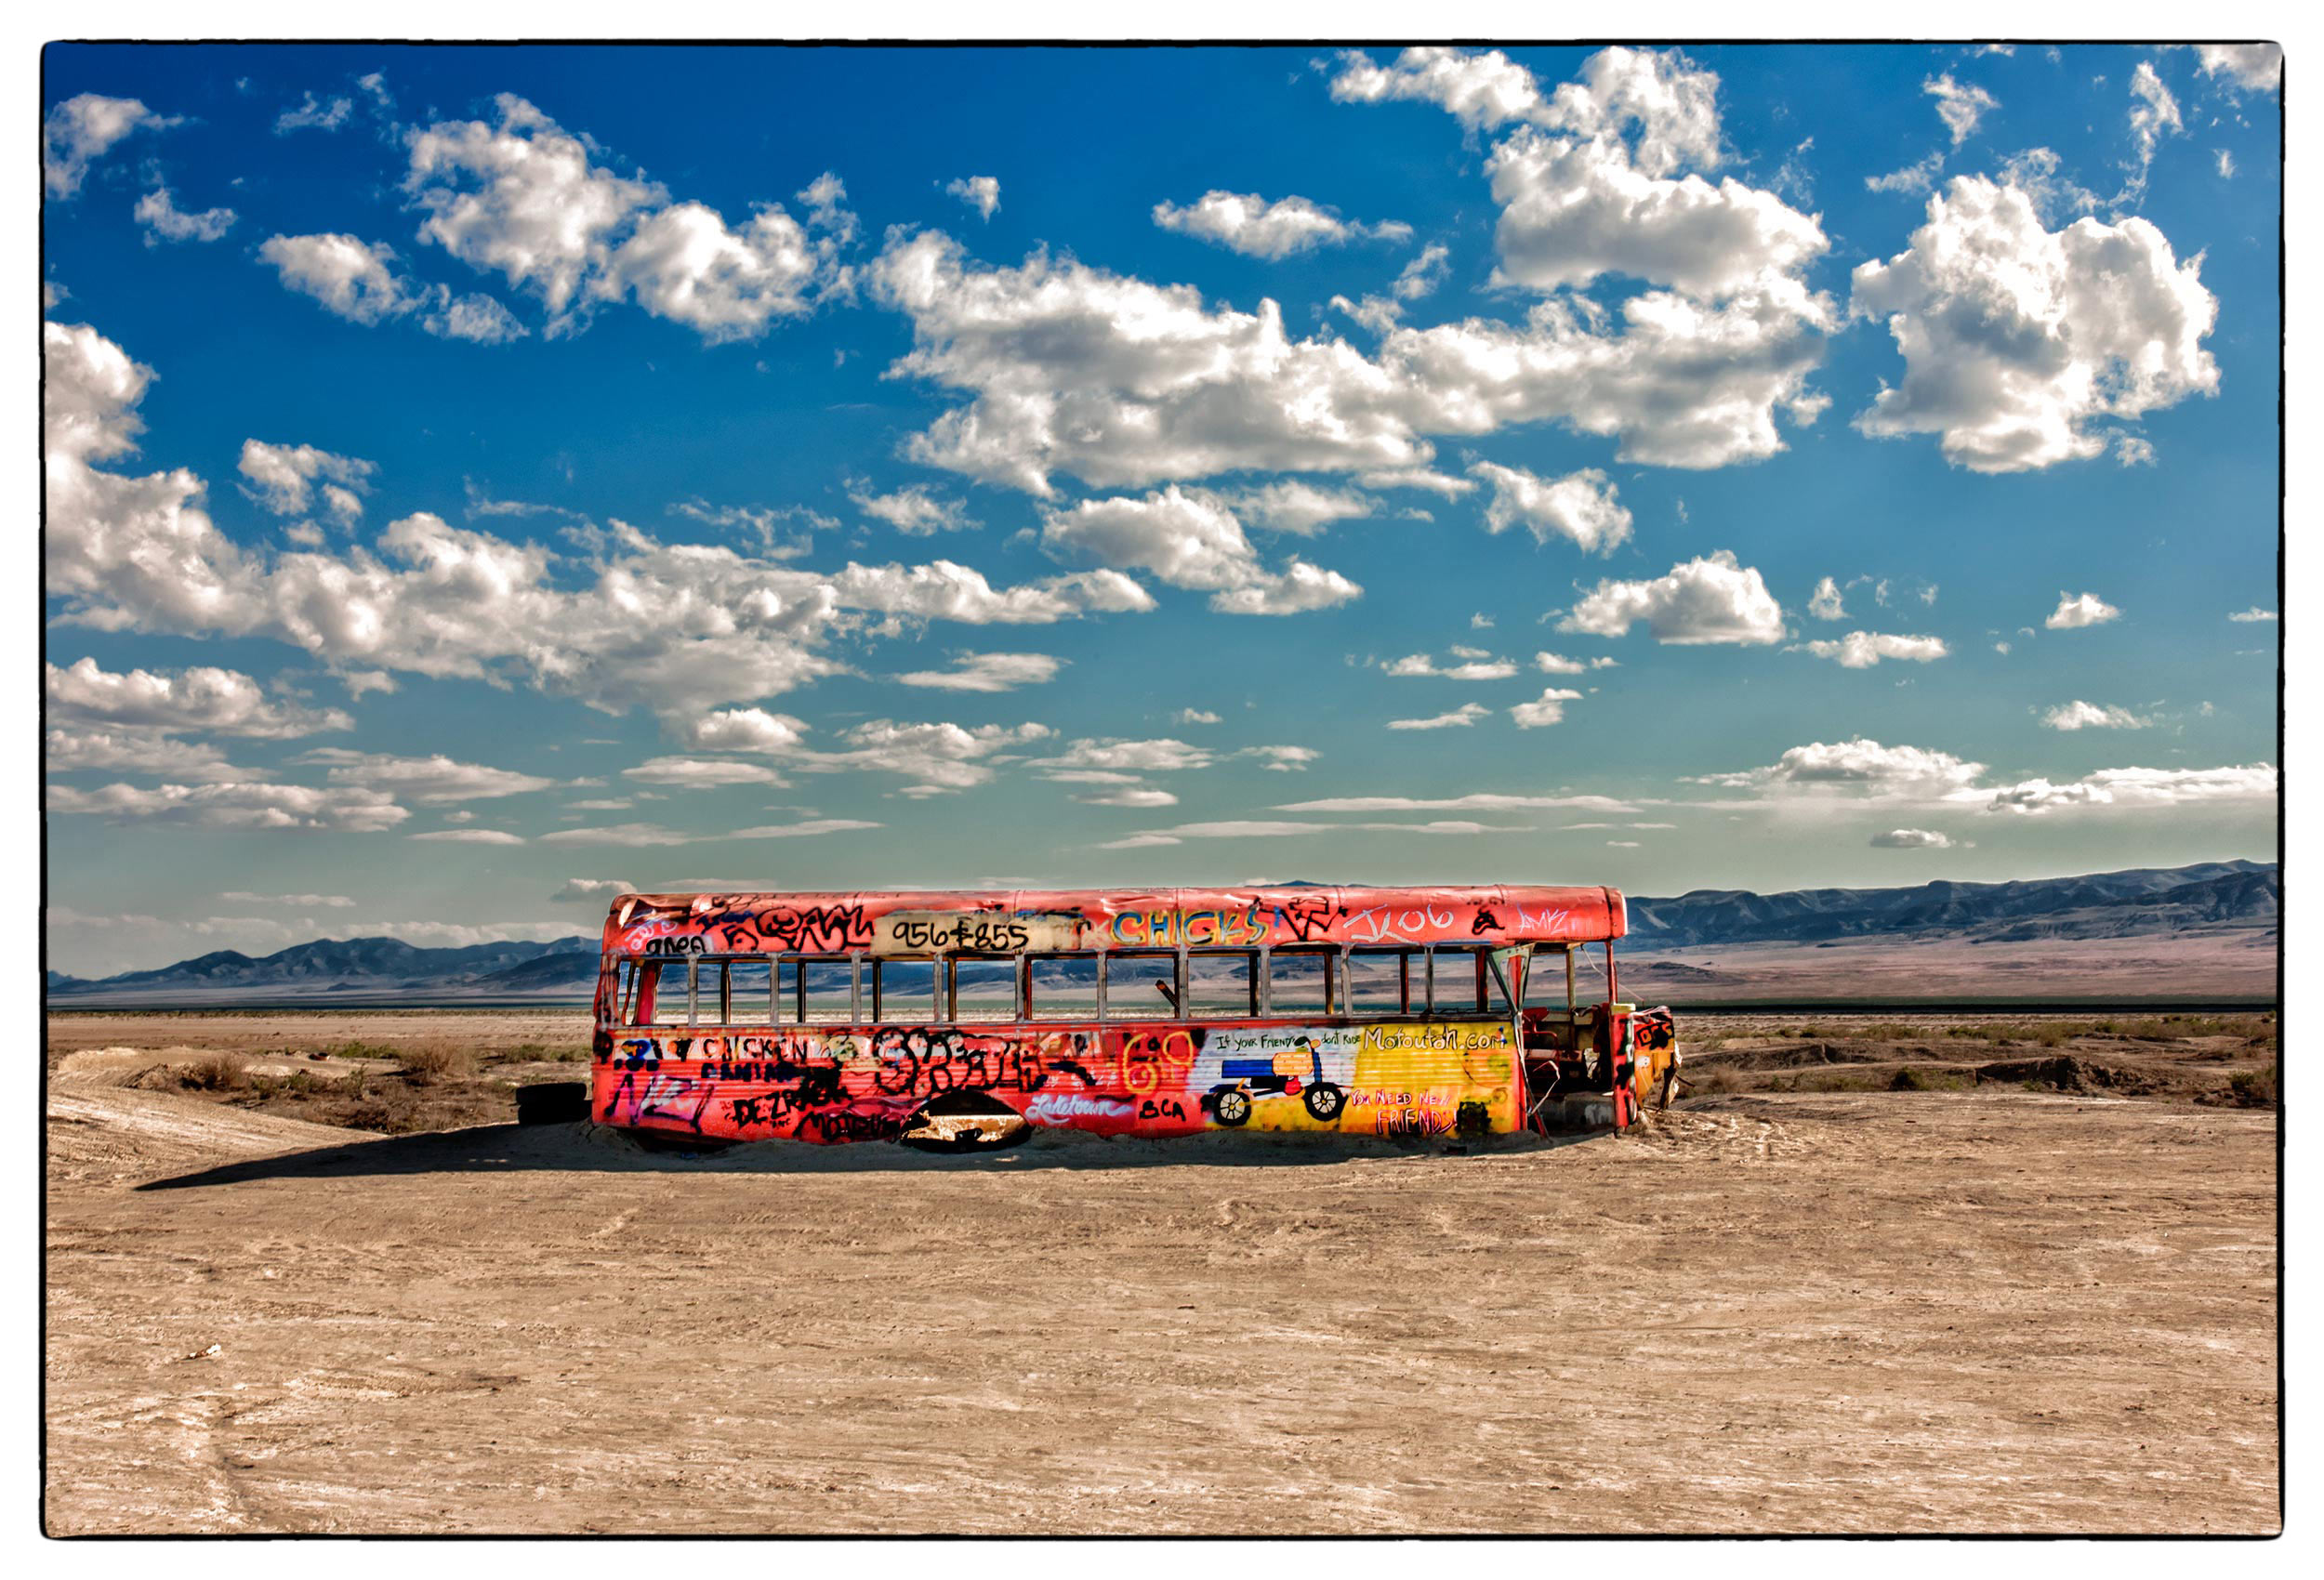 an-abandoned-yellow-school-bus-sits-in-the-middle-of-the-nevada-desert-outside-a-military-bombing-range